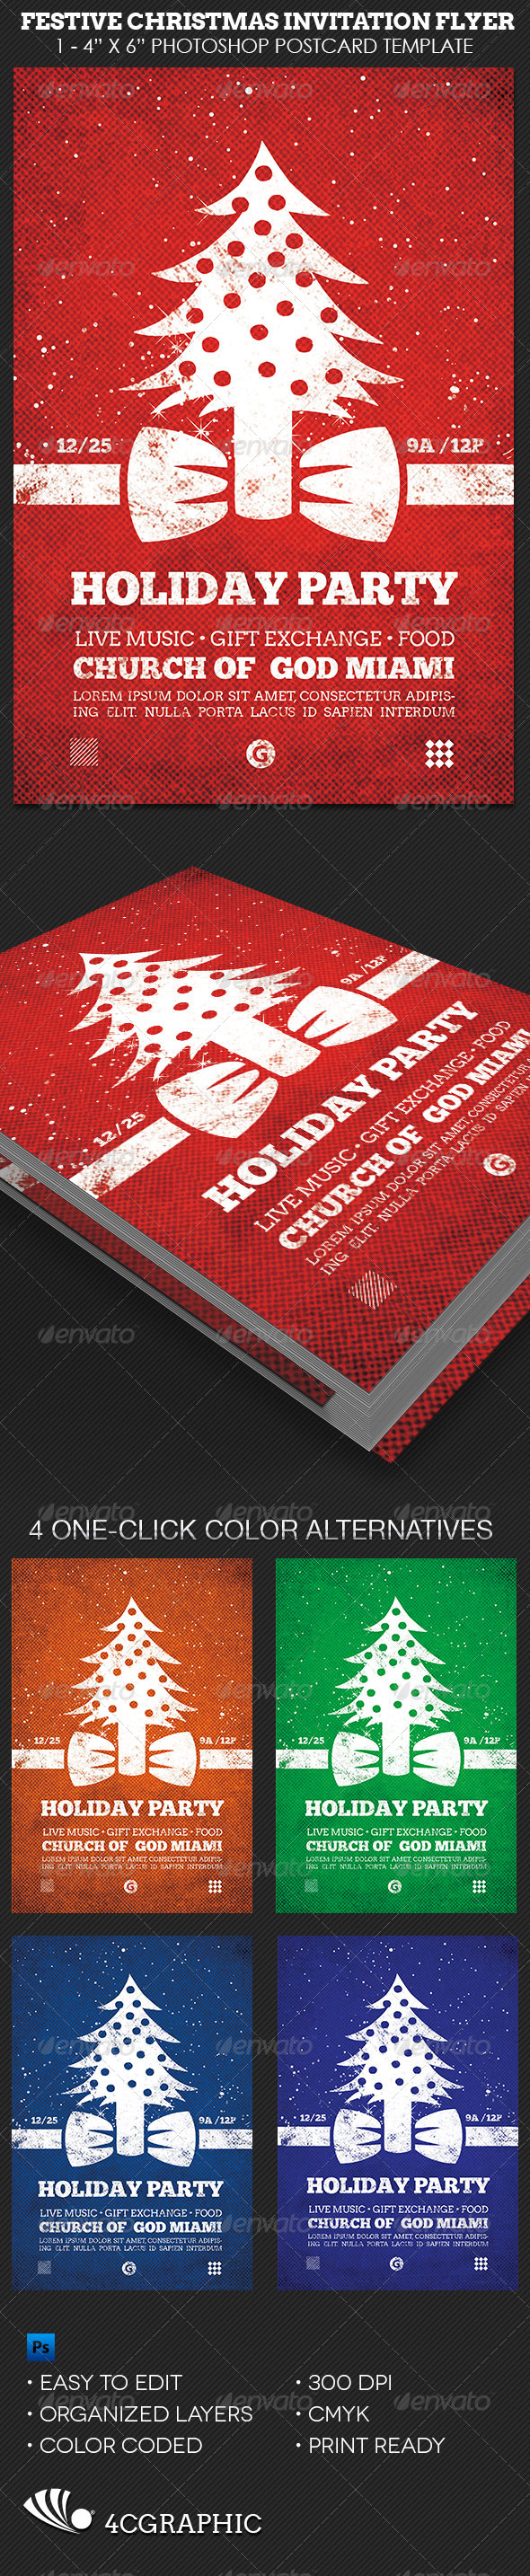 Festive Christmas Invitation Flyer Template - Holidays Events